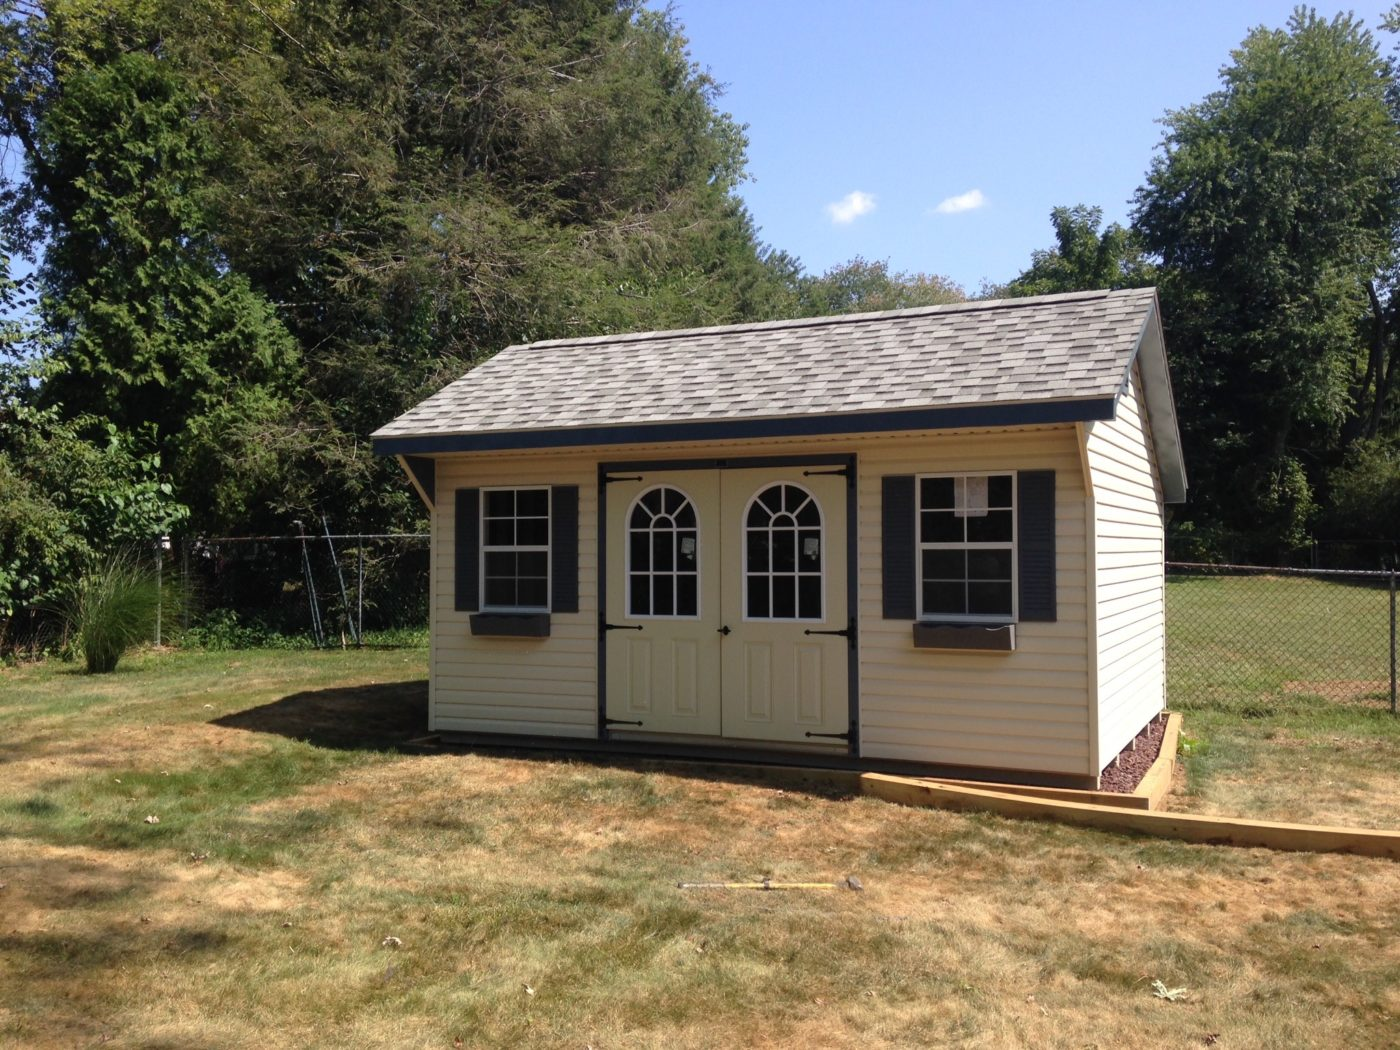 sheds for sale in ny